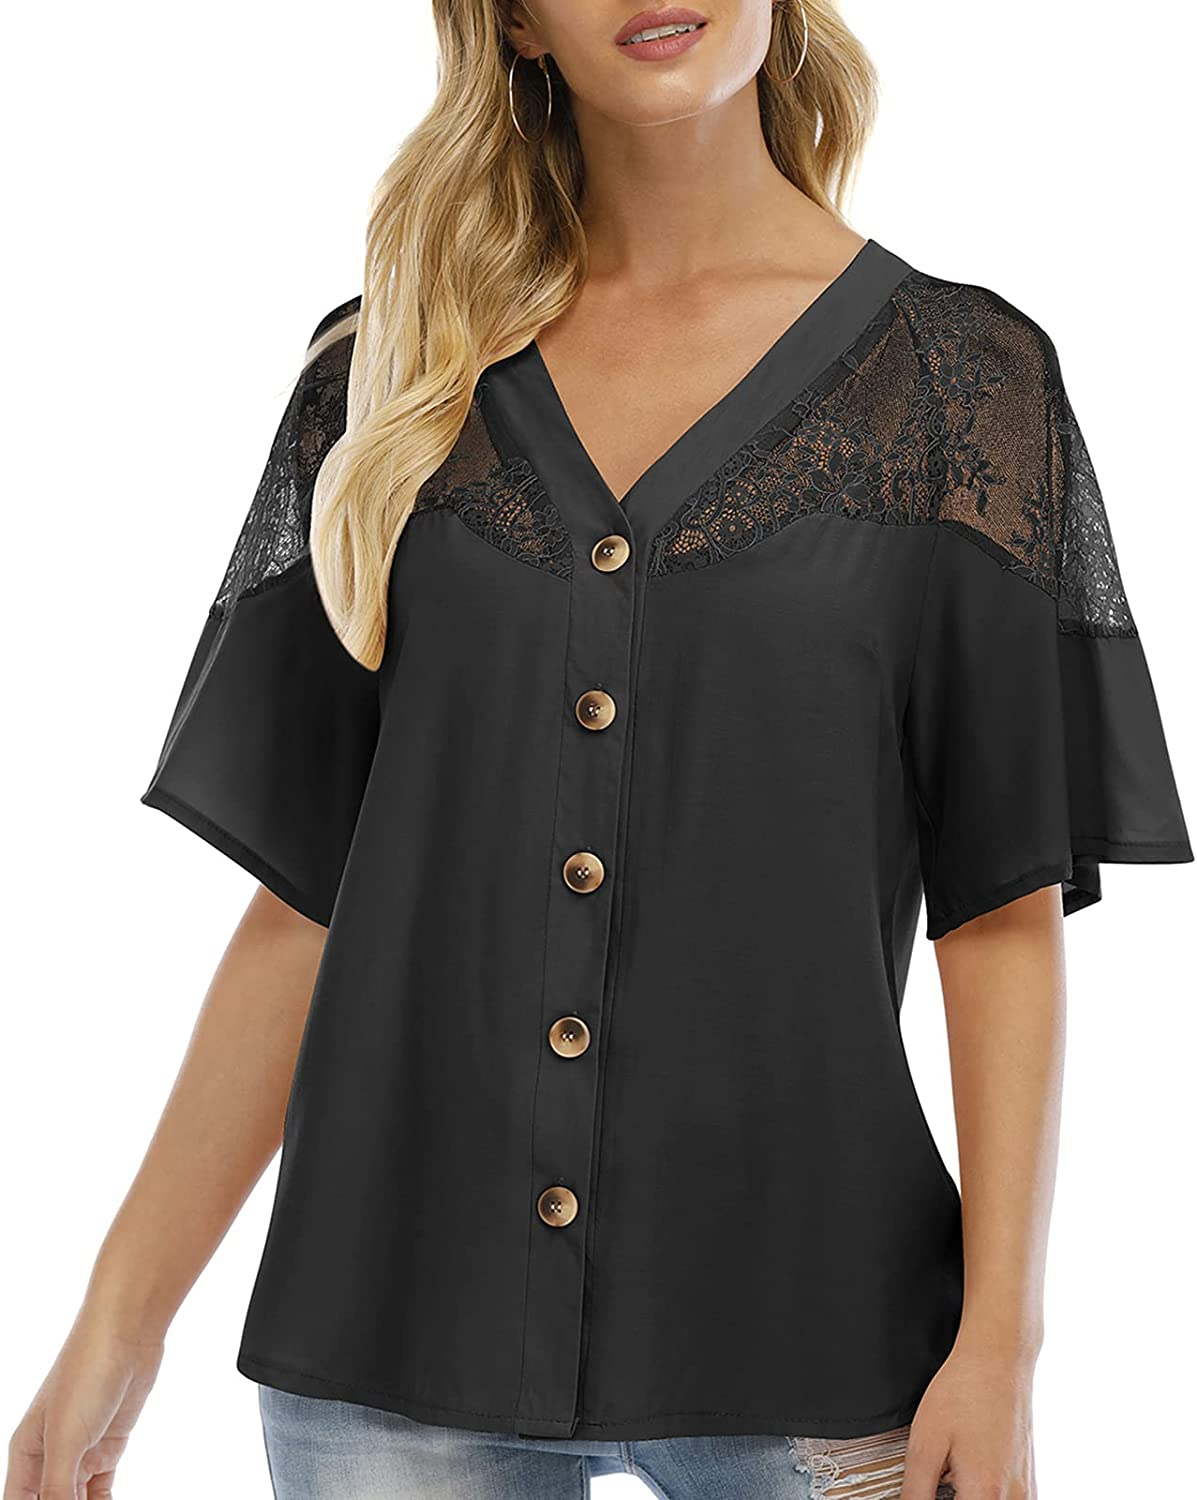 Airmiuu Womens Button Down Blouse V Neck Short Sleeve Lace Tops Loose Casual Shirt